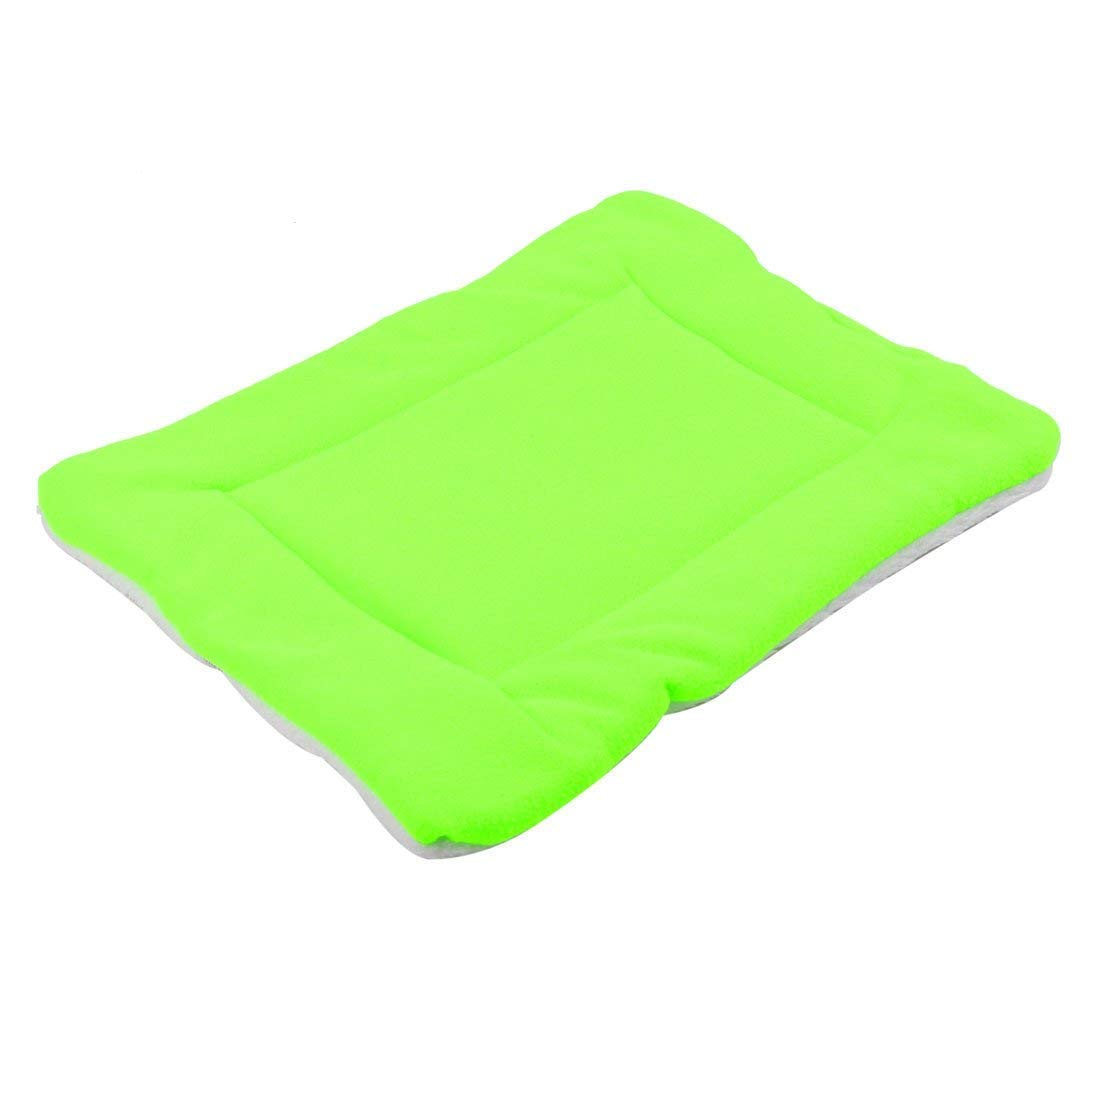 1Pc S   Pets Dogs Cats Indoor Blanket Sleeping Bed Sitting Mat Pad Cushion Lime Green